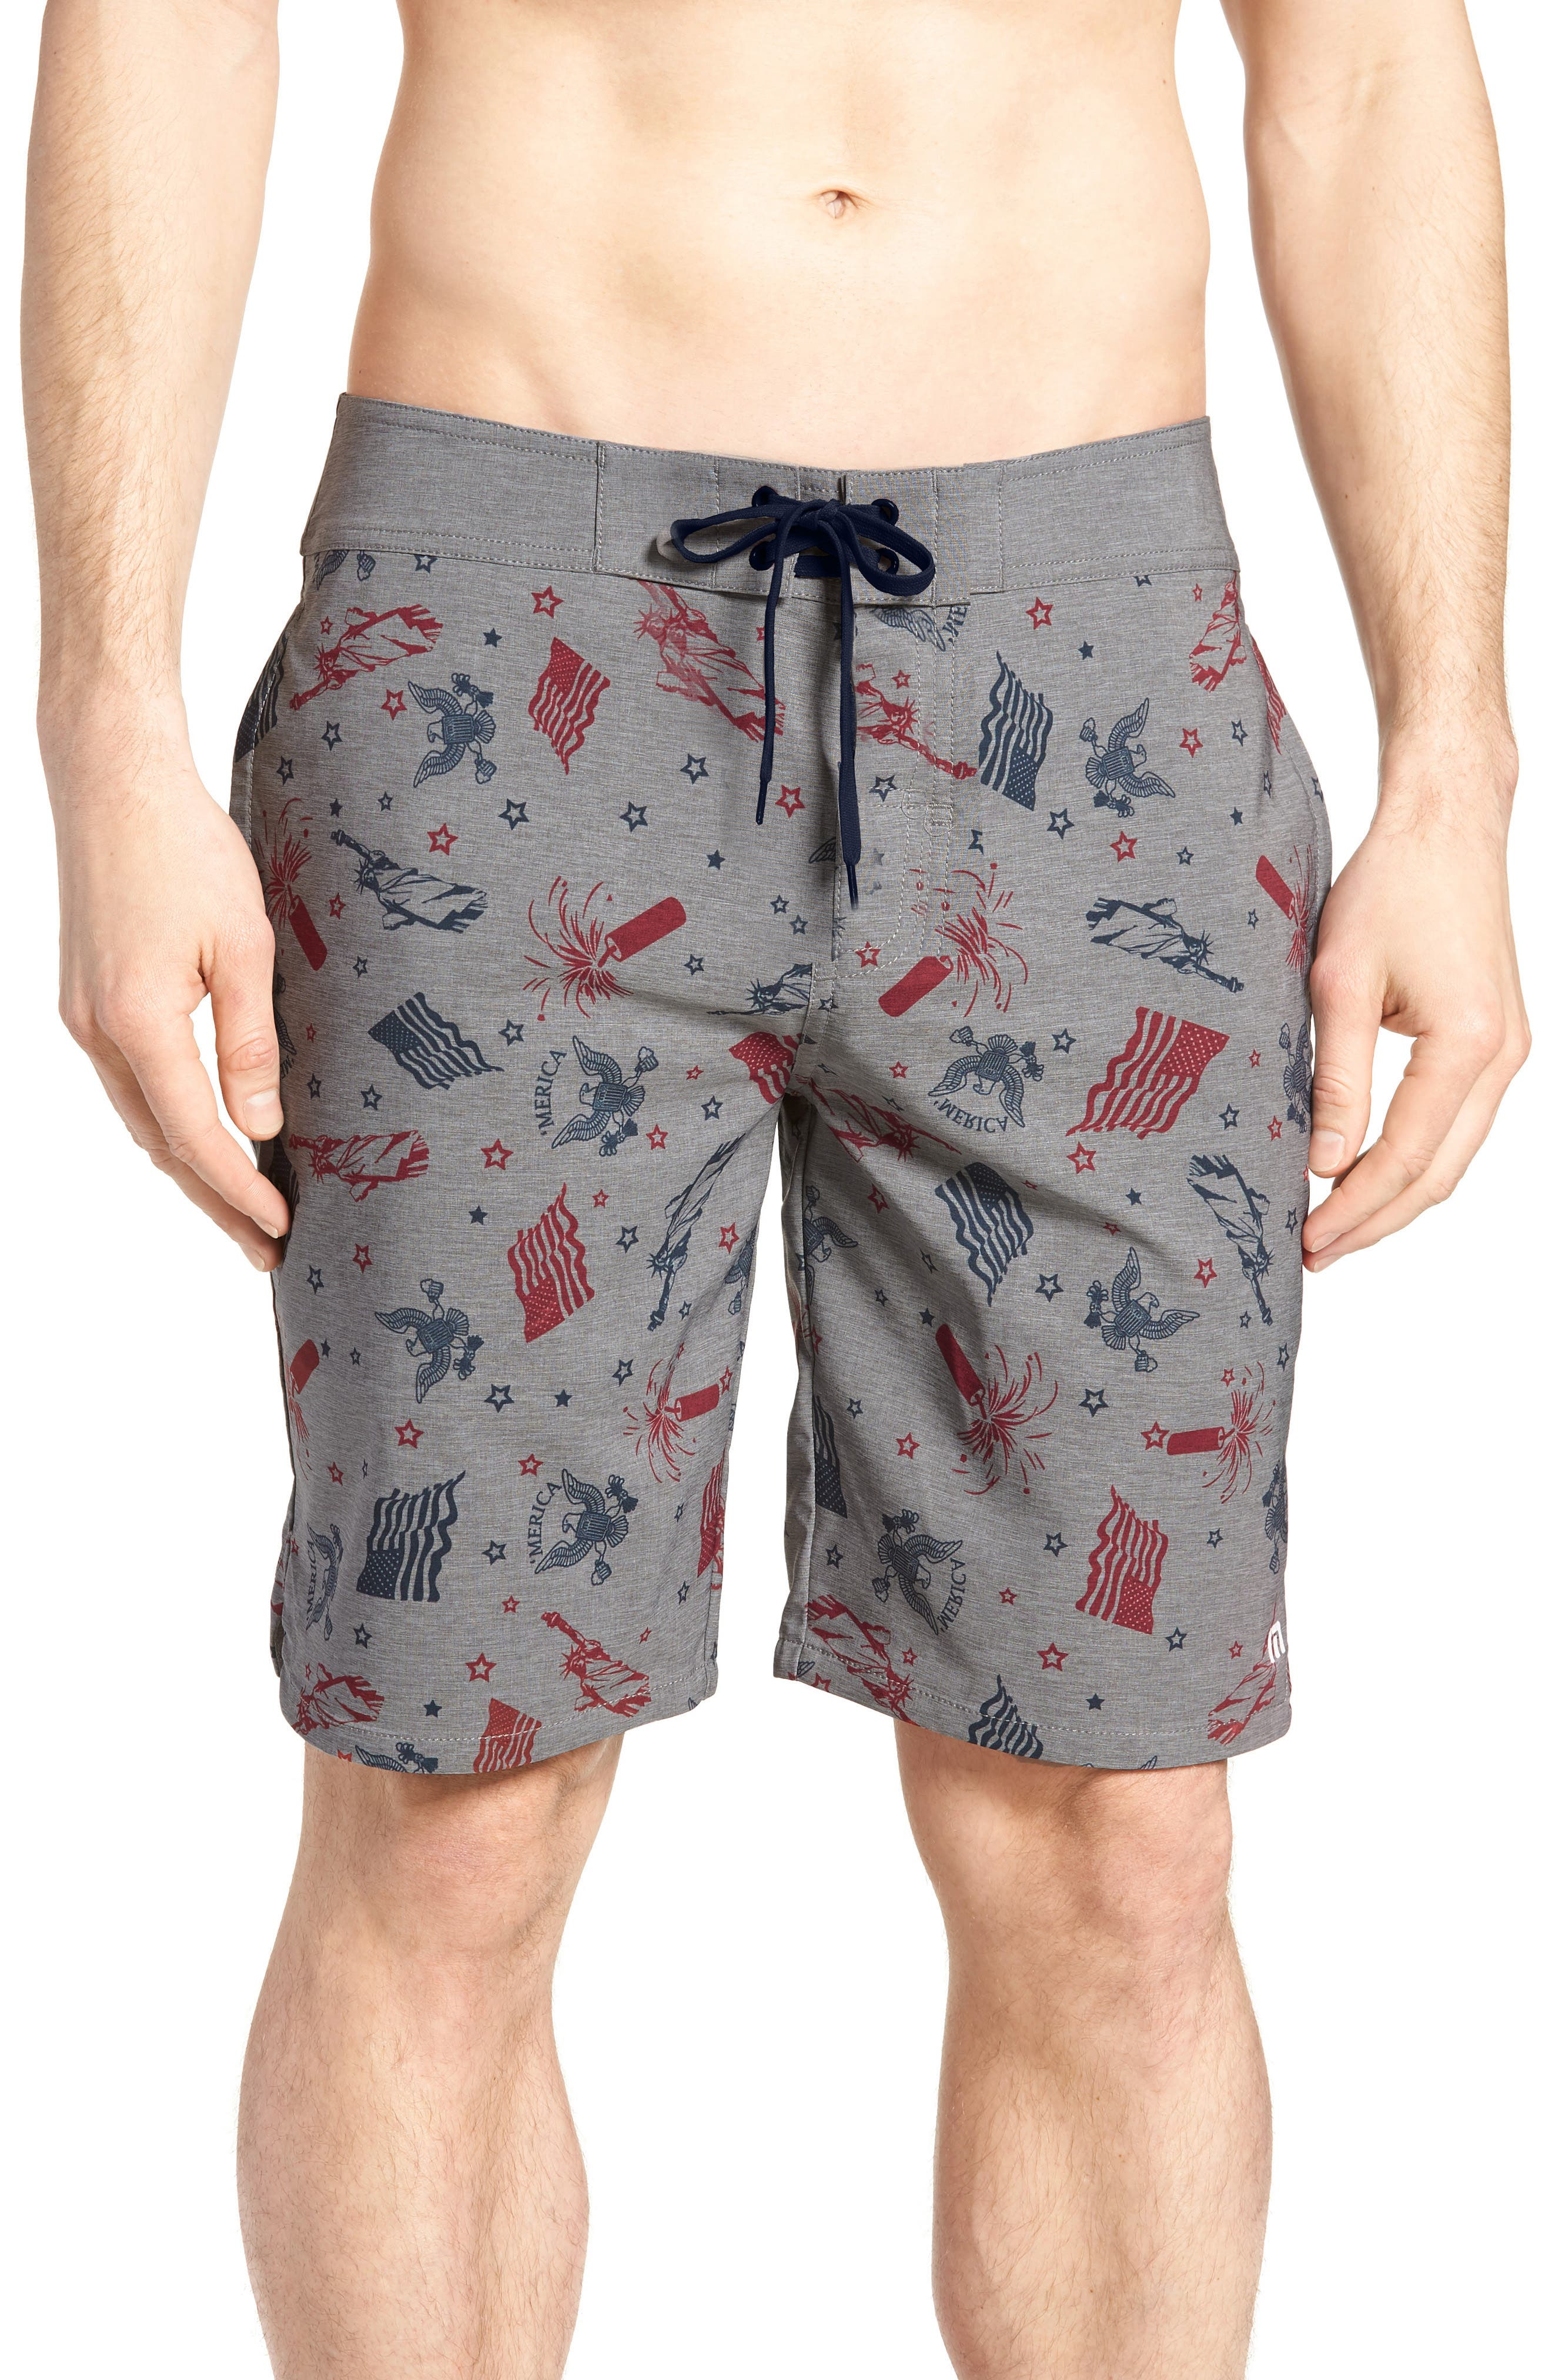 Liberty Swim Trunks,                             Main thumbnail 1, color,                             HEATHER GRIFFIN